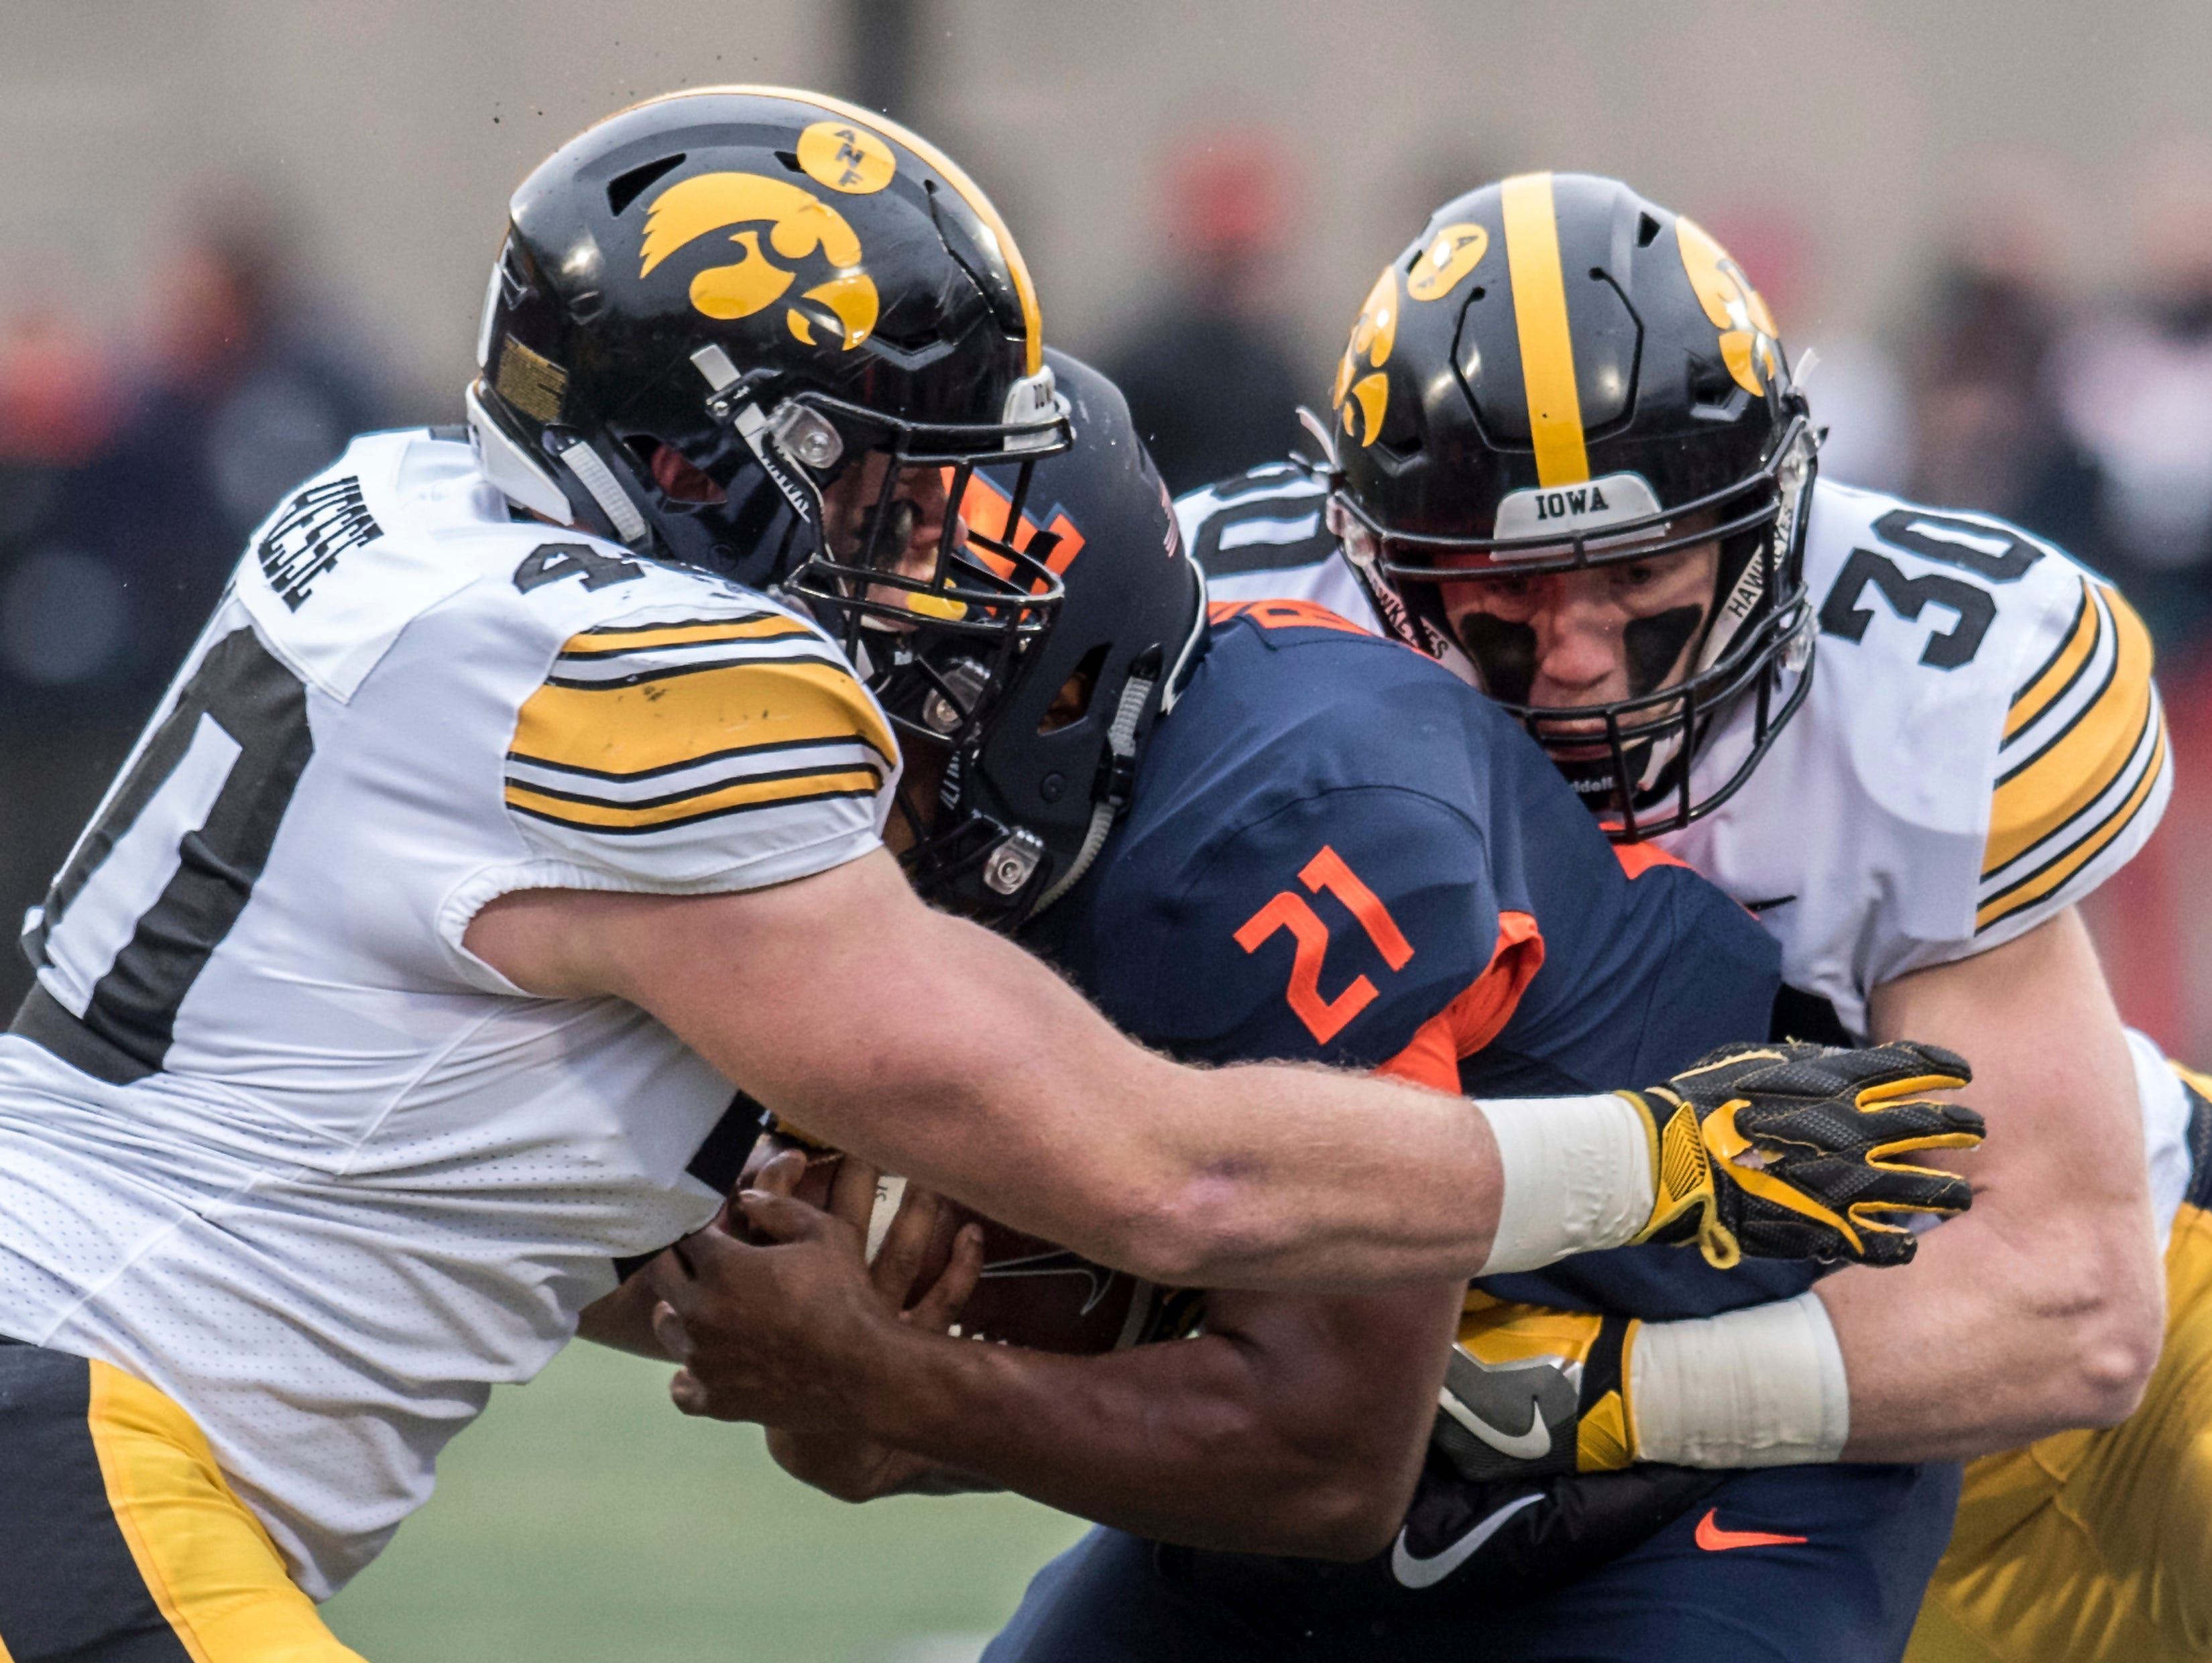 Iowa's Parker Hesse (40) and Jake Gervase (30) tackle Illinois' Ra'Von Bonner (21) in the first half of a NCAA college football game, Saturday, Nov. 17, 2018, in Champaign, Ill.